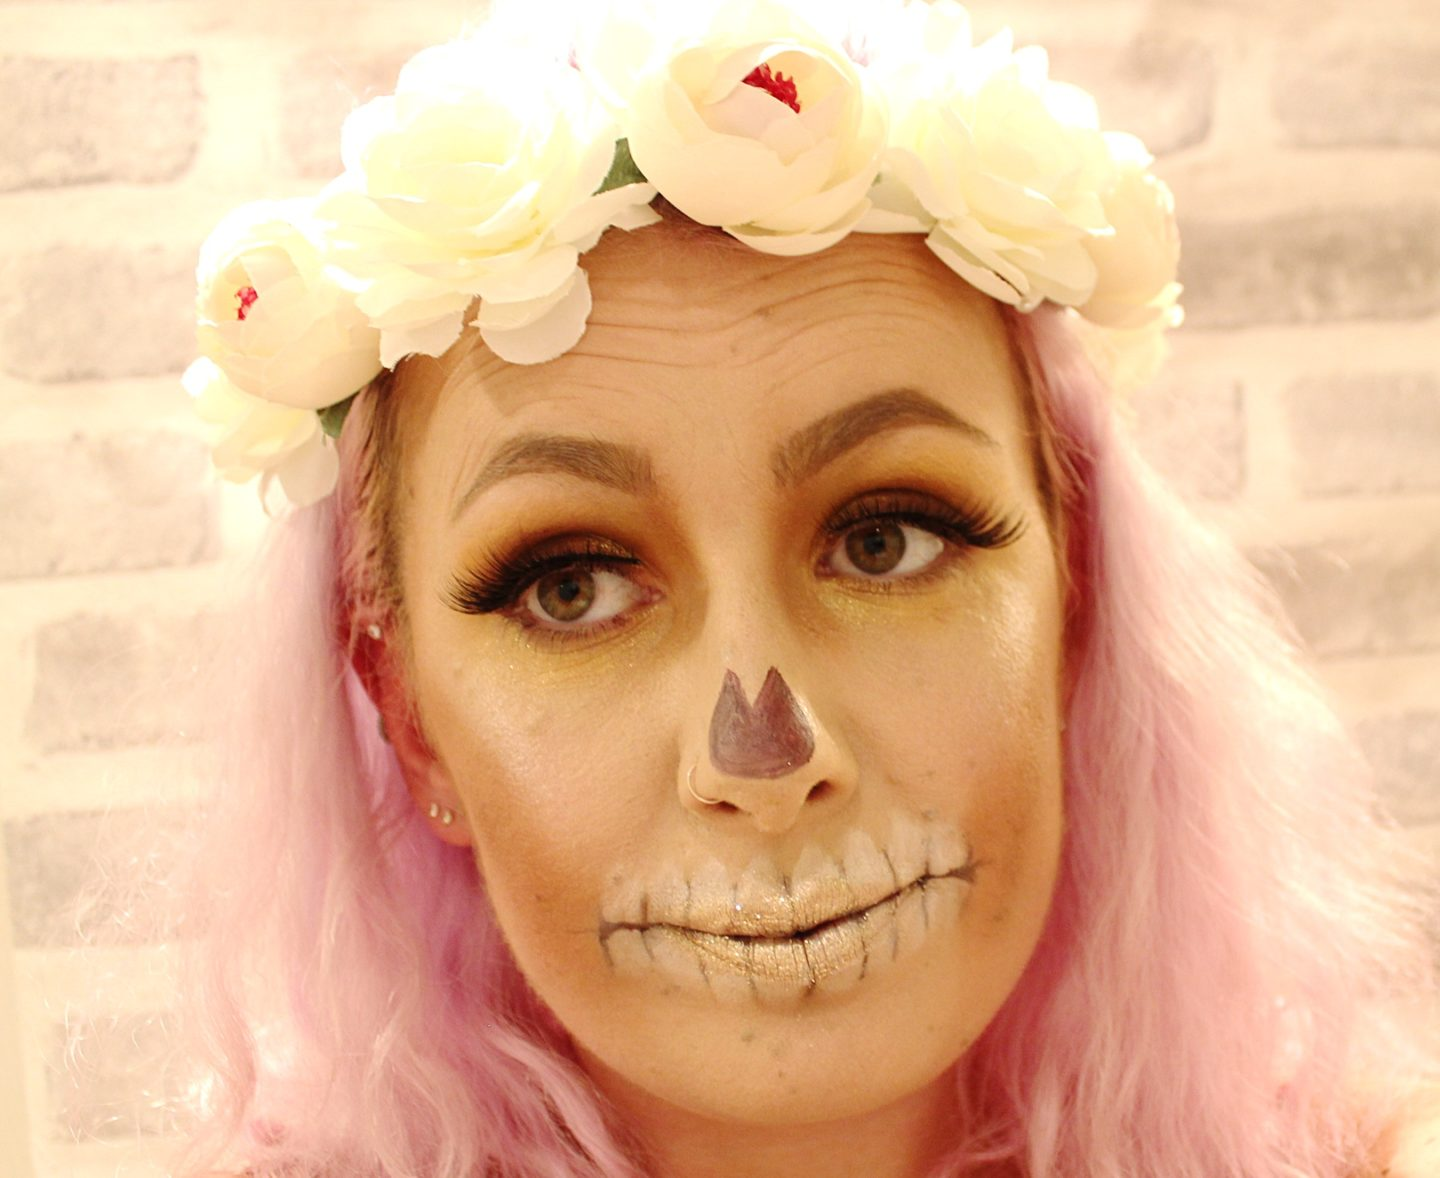 Stand Out From The Crowd with BootsCampaign Glittery Skull Makeup